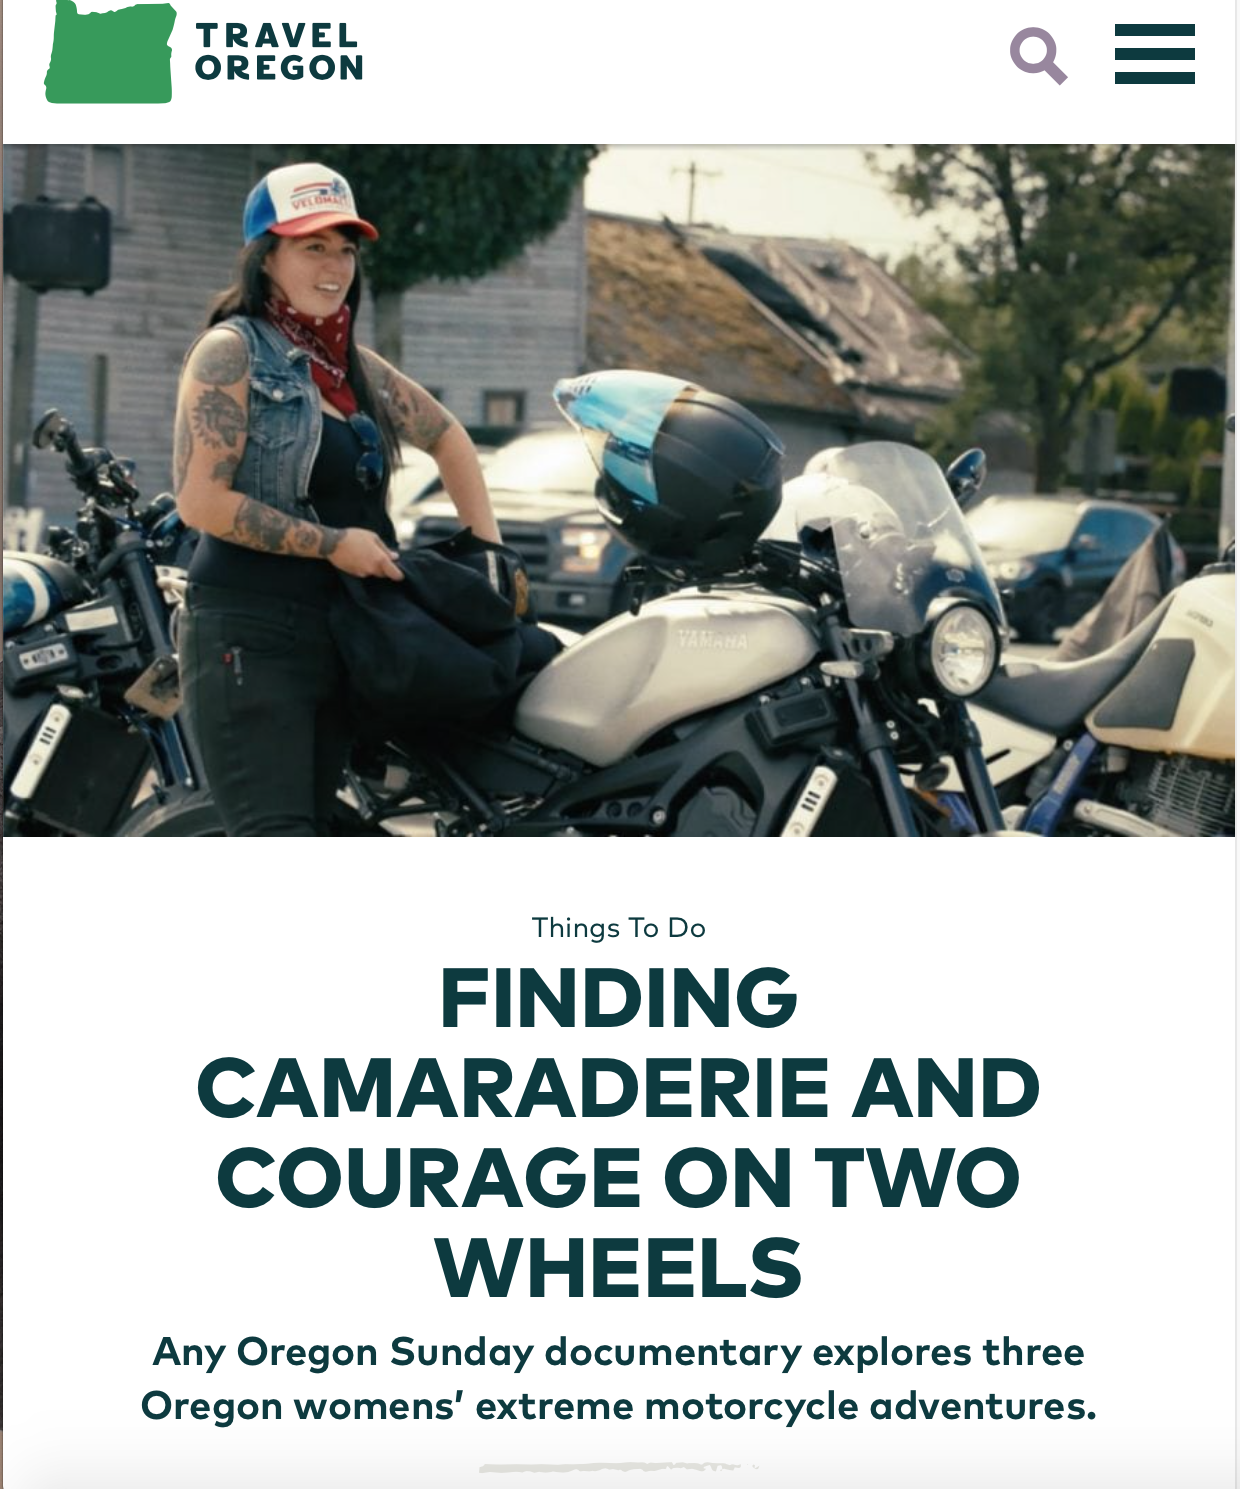 Finding Camaraderie and Courage on Two Wheels: Any Oregon Sunday documentary explores three Oregon womens' extreme motorcycle adventures